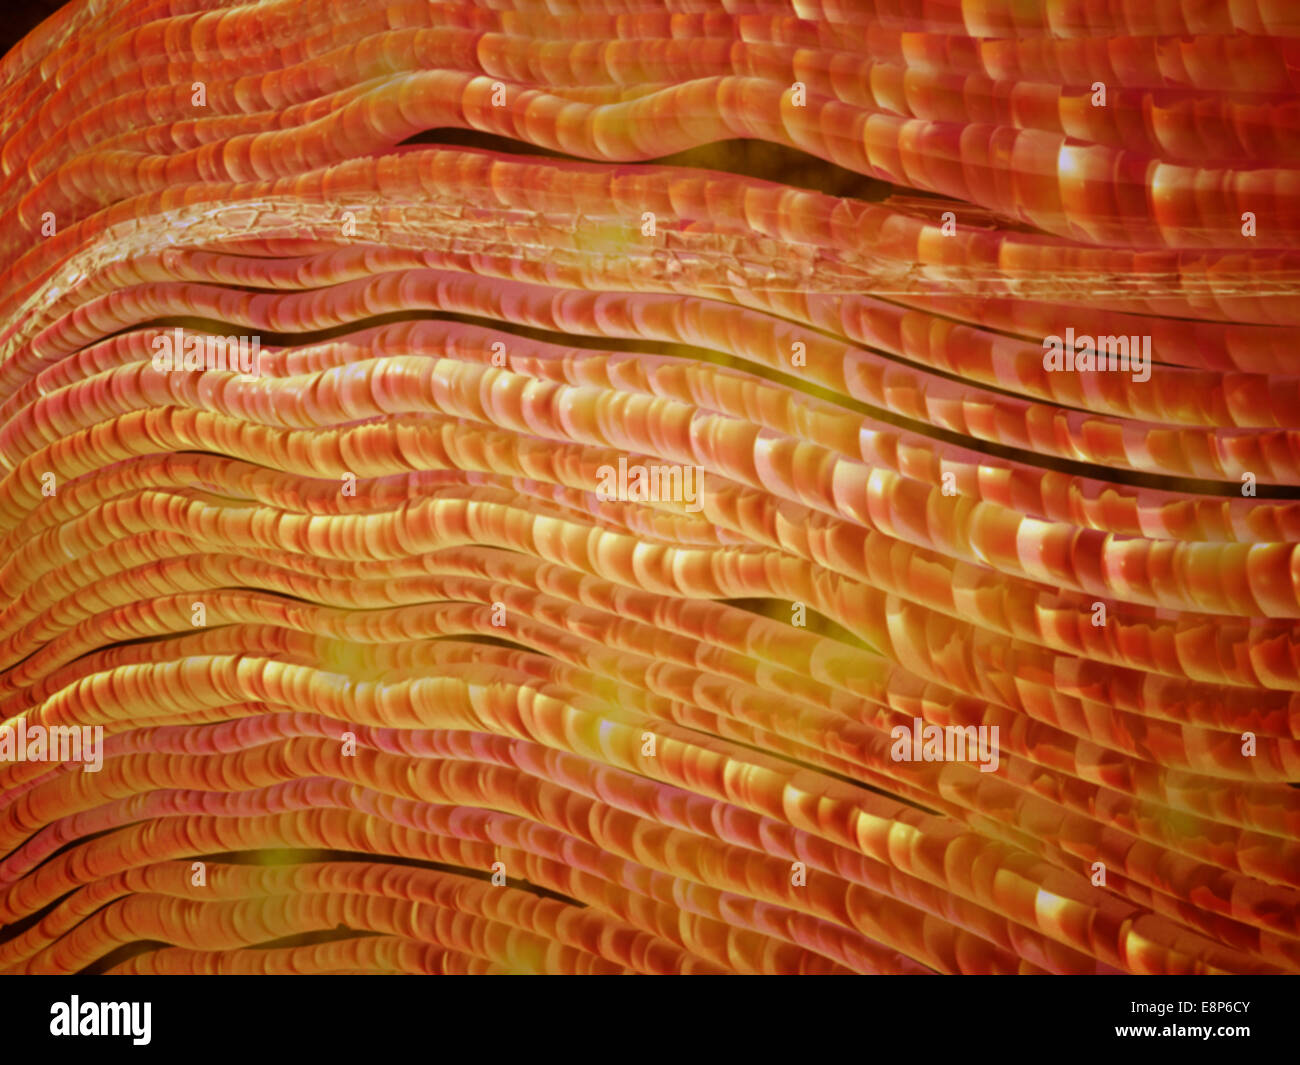 Microscopic view of nerve fibers. A nerve fiber is a threadlike extension of a nerve cell in the nervous system. - Stock Image